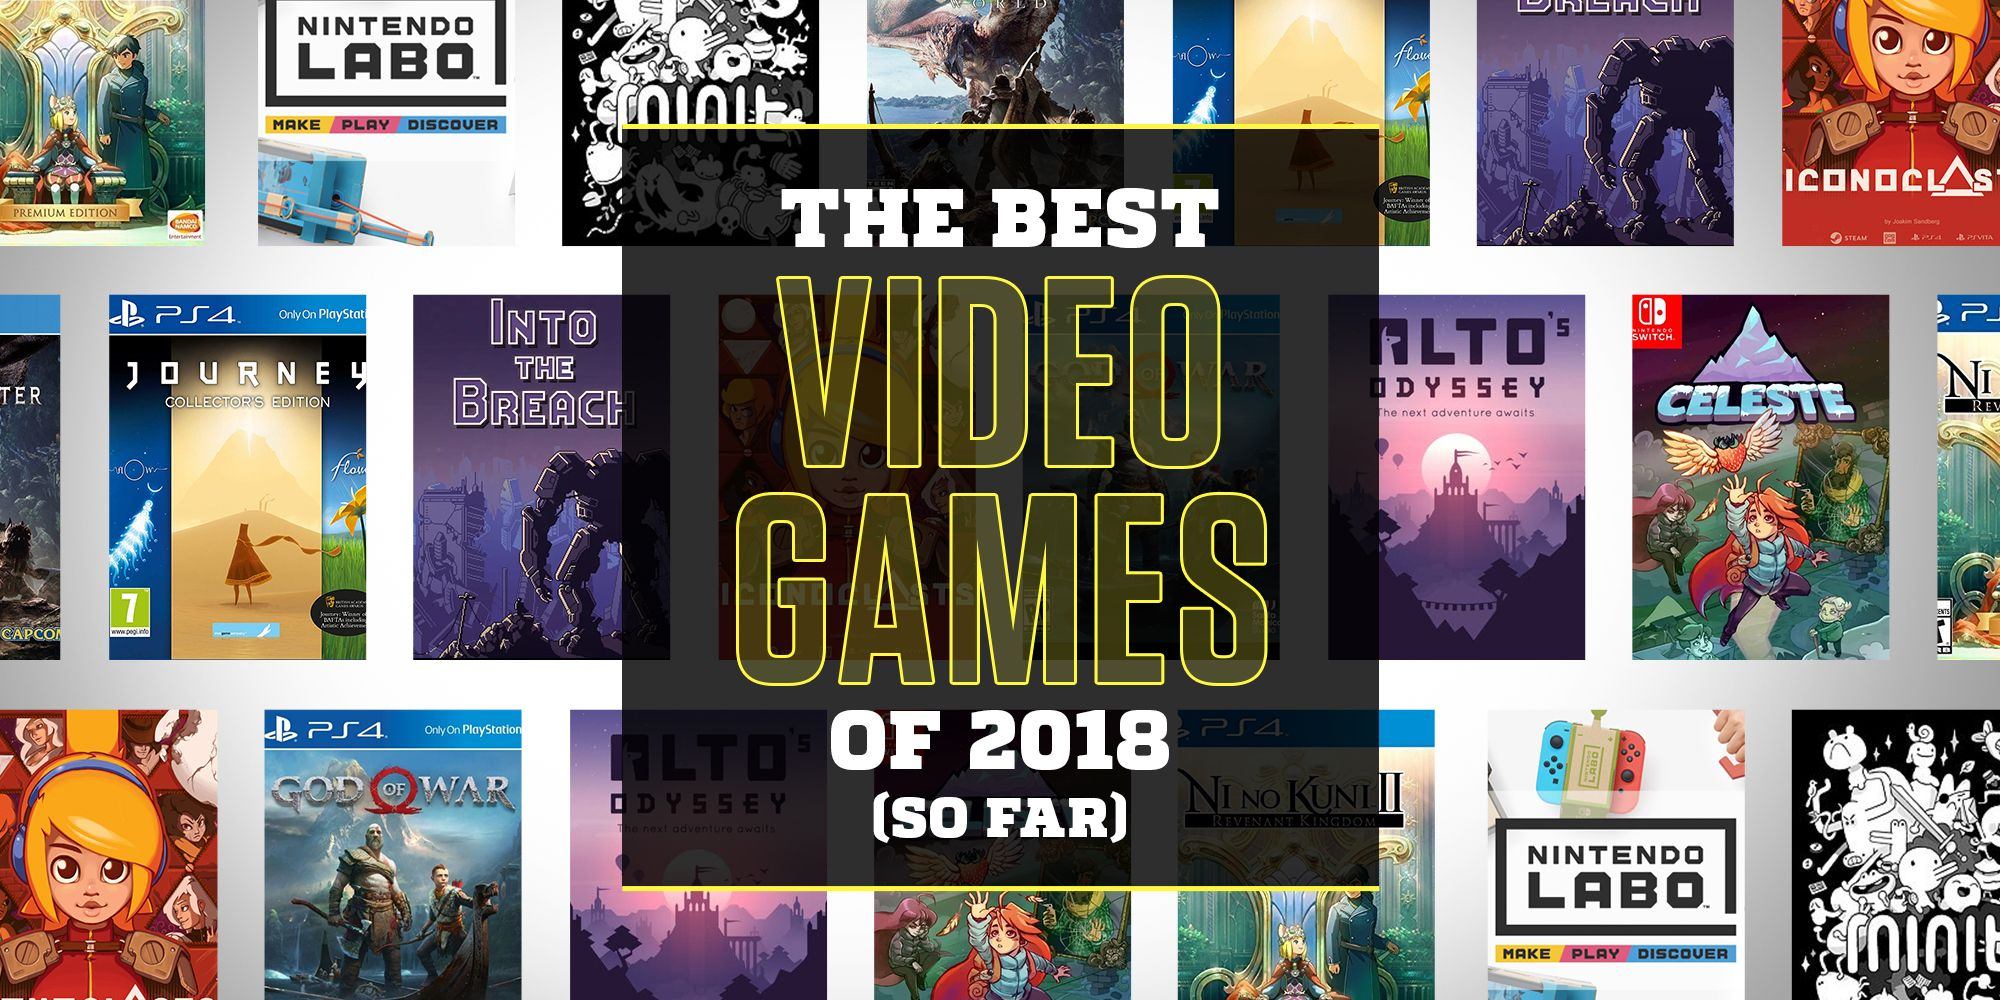 The Best Video Games of 2018 (So Far)